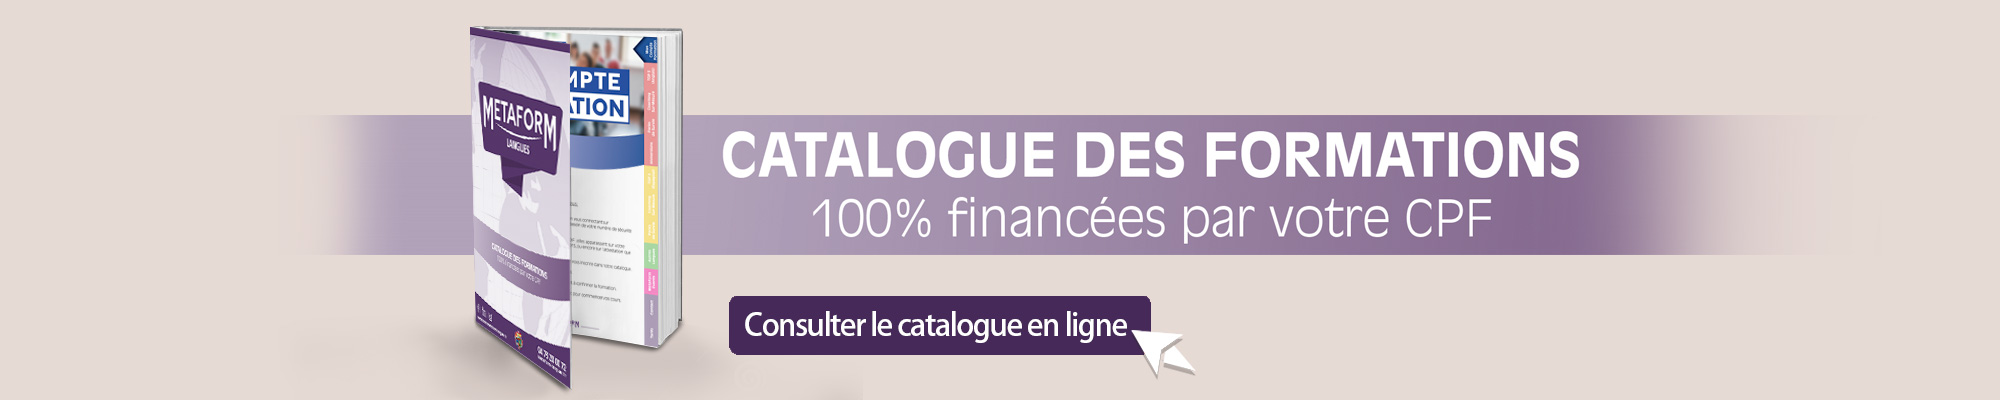 Catalogue des formations Metaform Langues